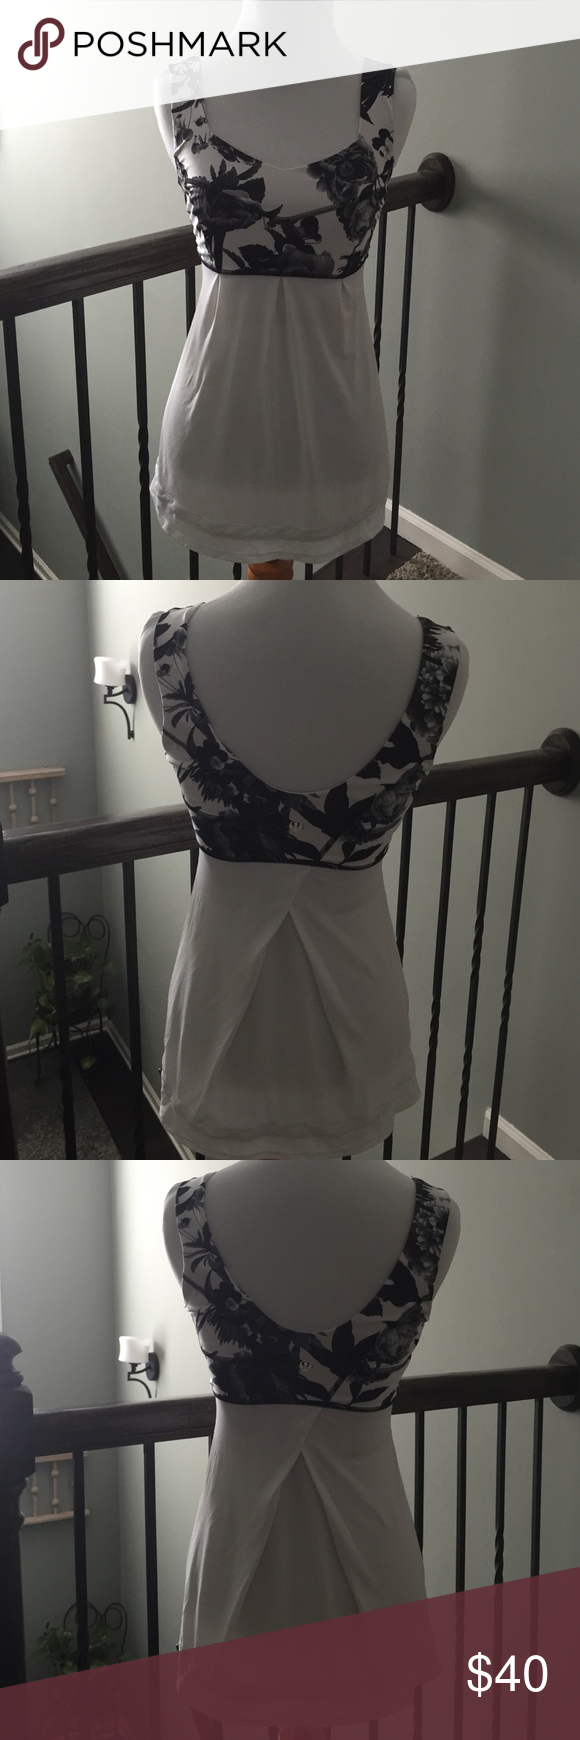 Lululemon top,  sz 4 Great top!! I am a runner and just wear ones that fall differently. Size 4. Only worn twice. Excellent used condition. lululemon athletica Tops Tank Tops